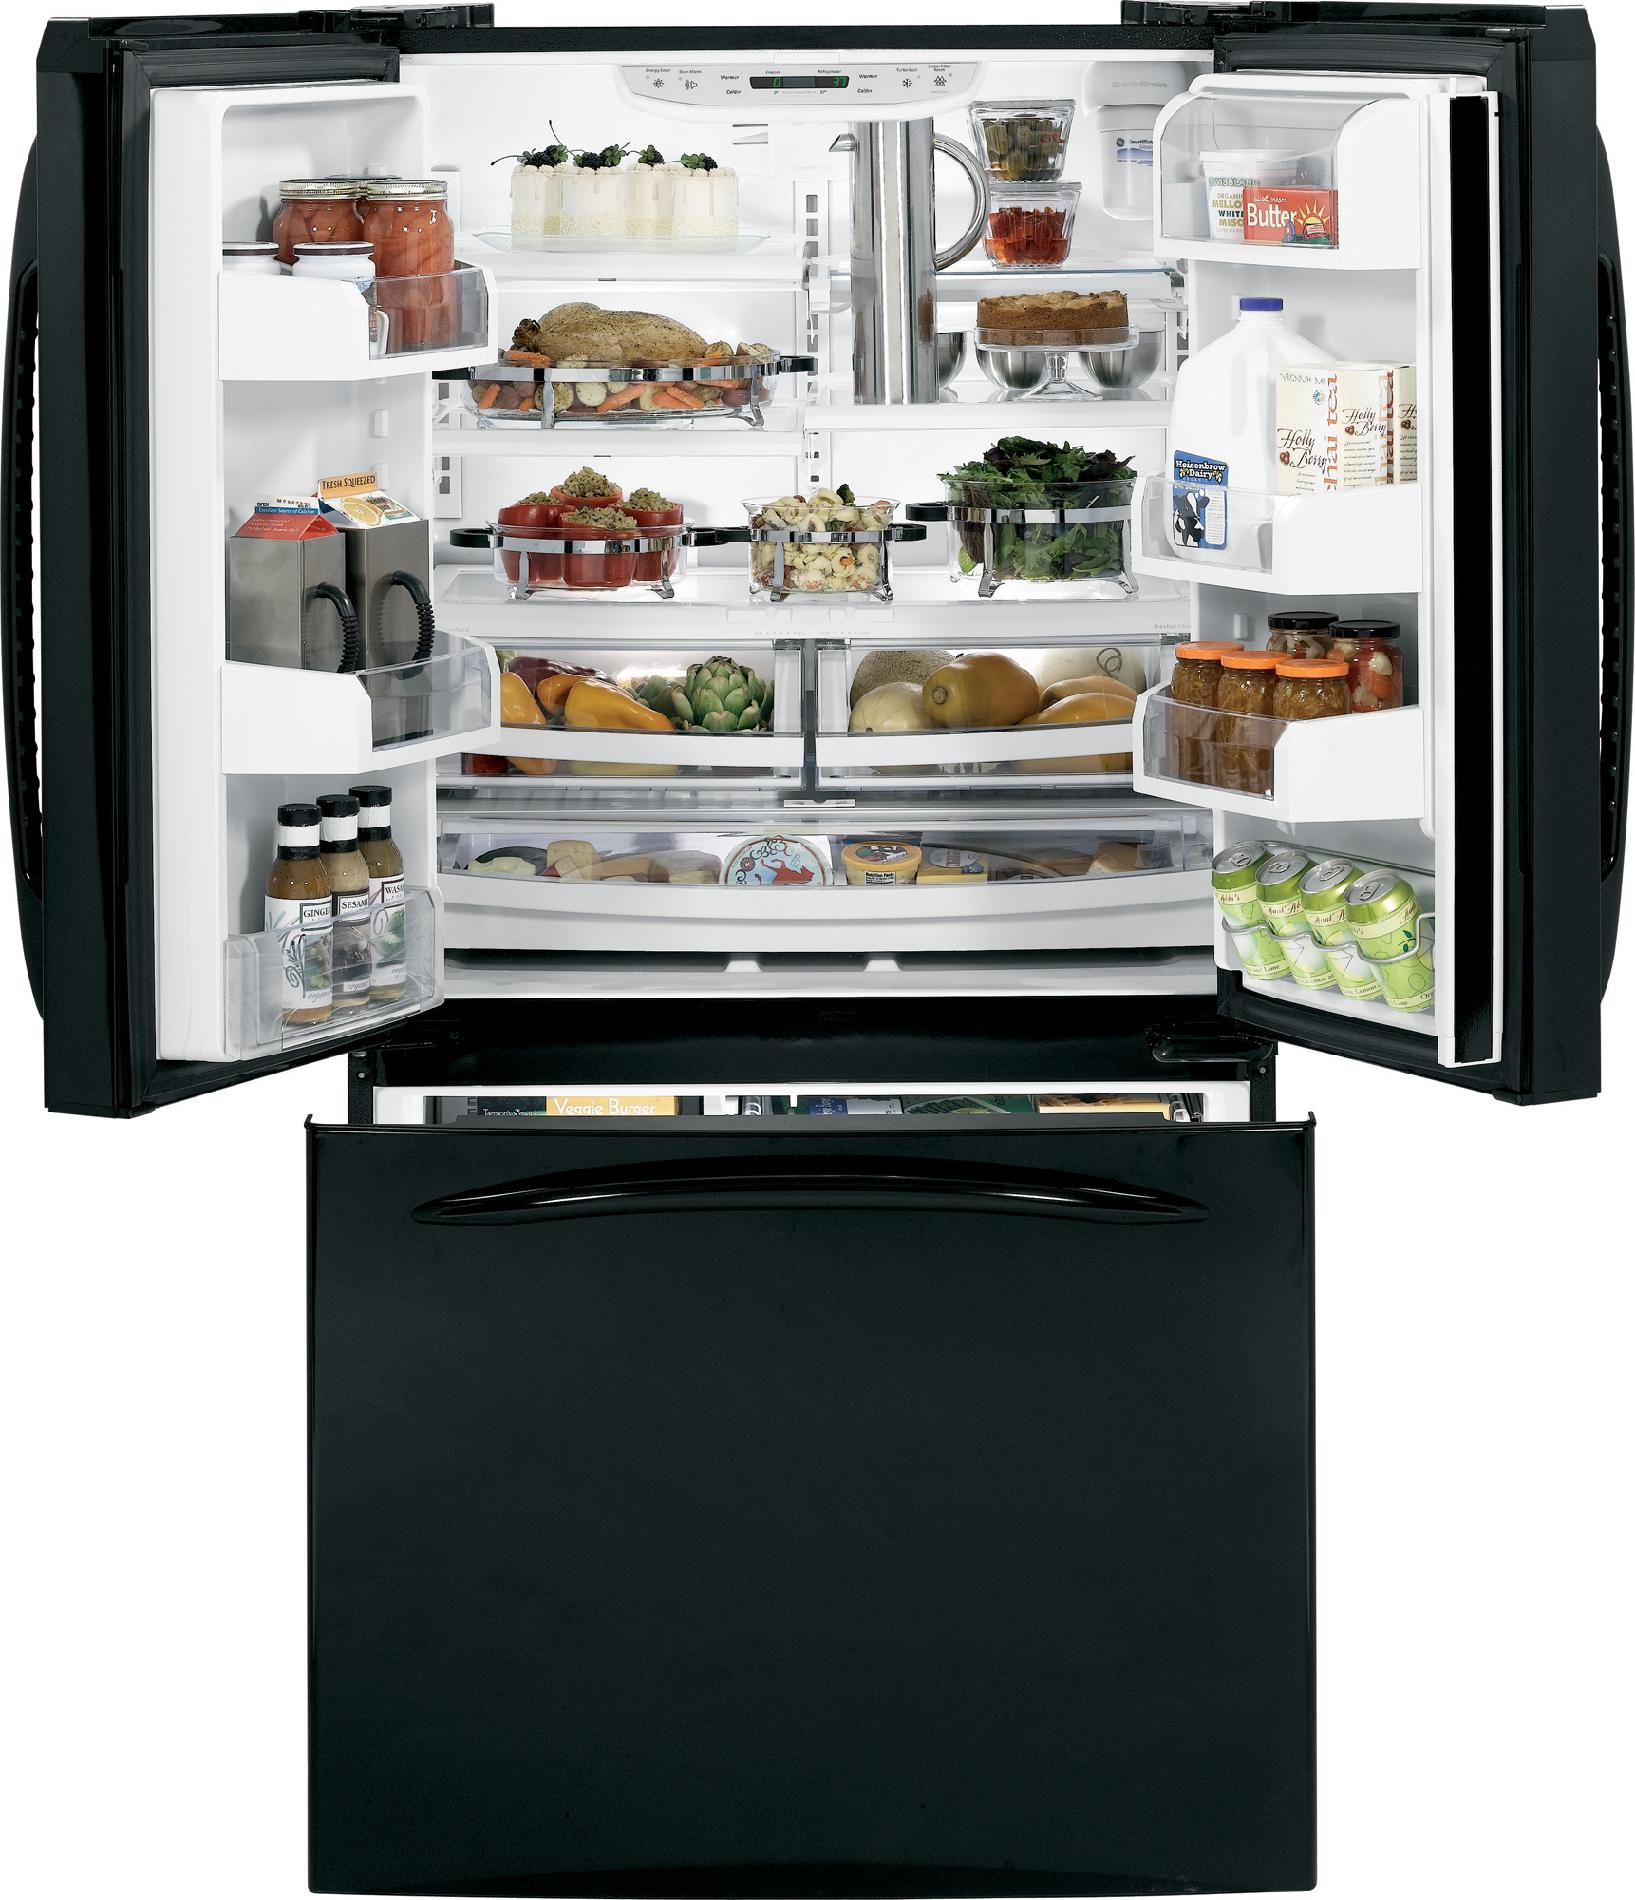 GE Profile 20.7 cu. ft. Counter-Depth French Door Refrigerator - Black